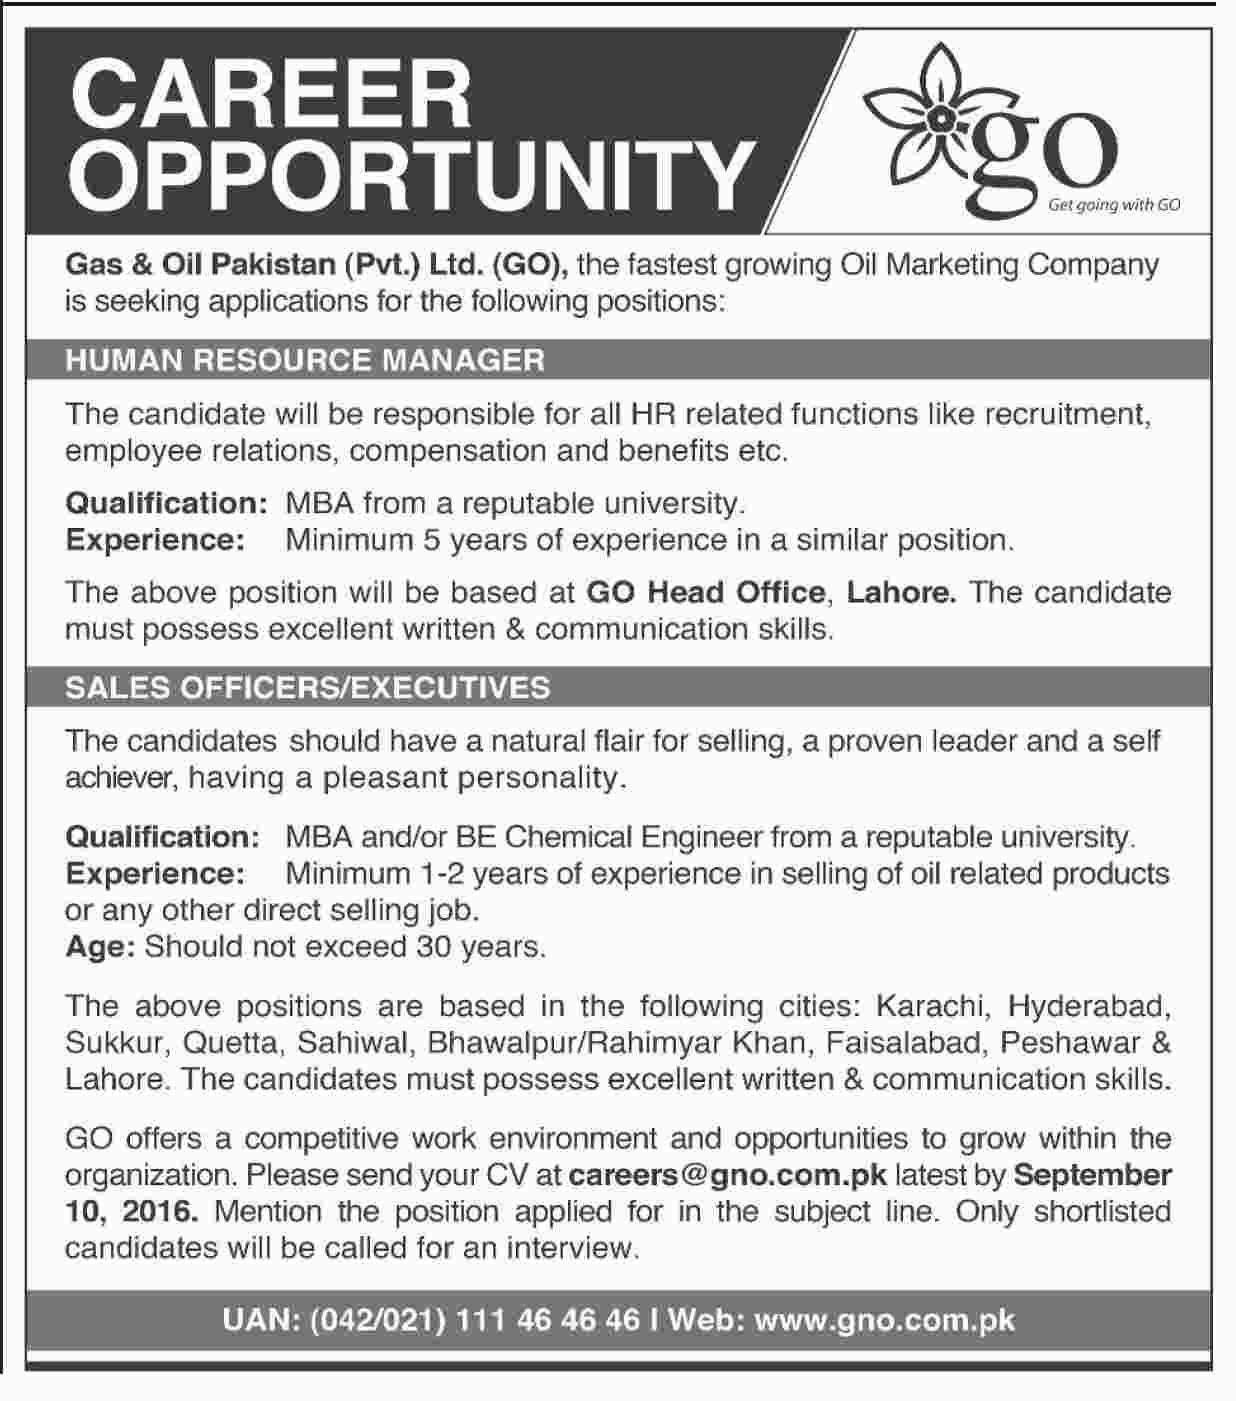 Gas & Oil Pakistan Pvt Ltd Jobs August 2016 Available for HR Manager ...